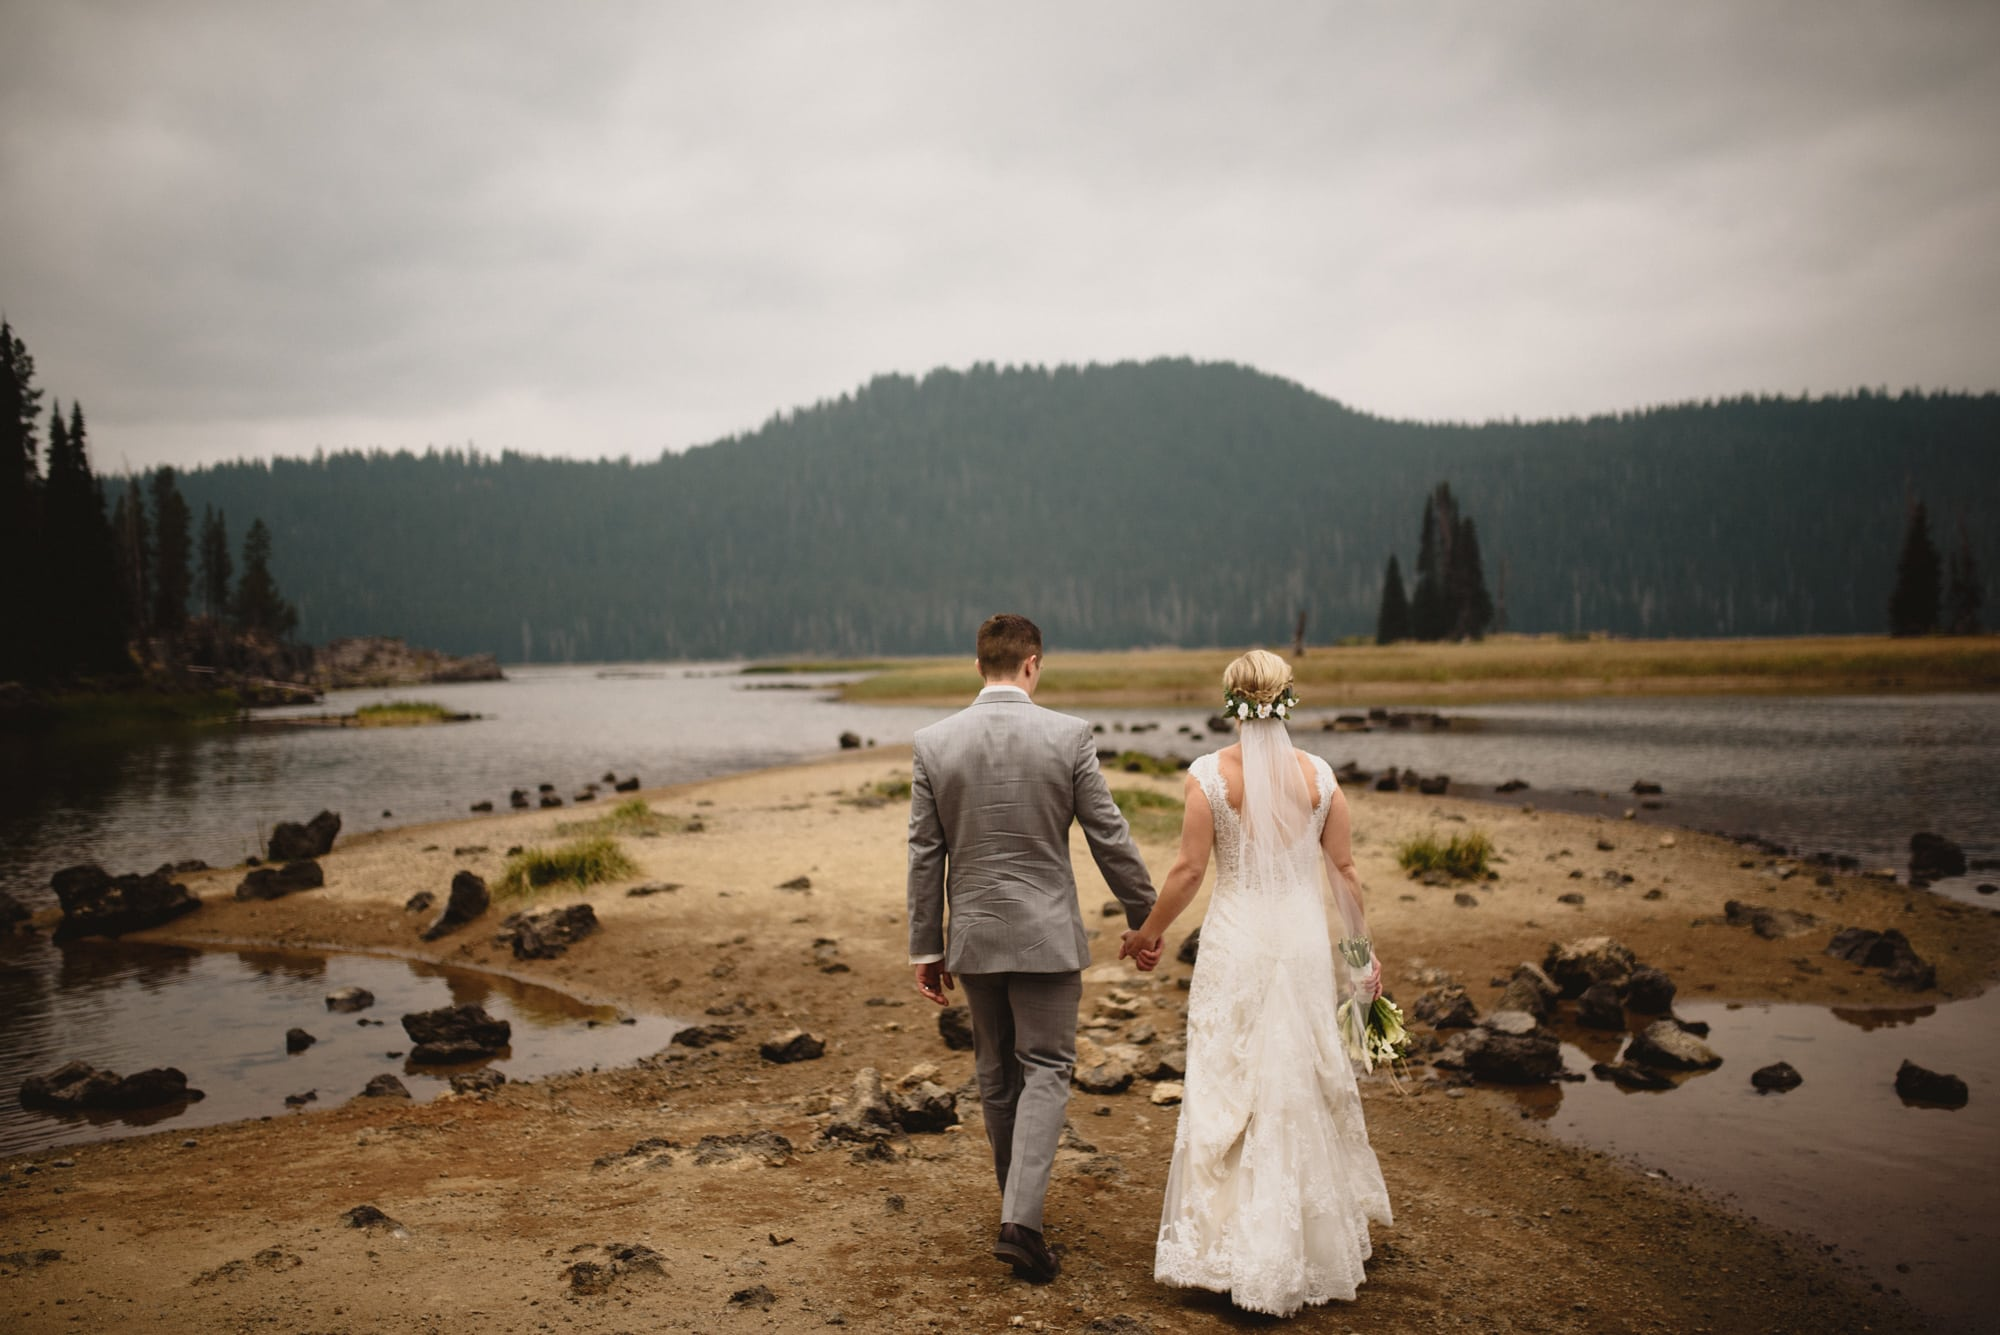 Carly and Danny are from Baltimore, MD and chose Bend, Oregon for their Elopement. After a little internet research decided on a Sparks Lake for their ceremony. Neither of them had ever been to Oregon, so they were up for an adventure. In the week leading up to their ceremony date several fires had started to break out through Oregon. There were three fires specifically that surrounded Sparks Lake. For several days, you could not see across the lake, and it was highly recommended not to breath the air. I scouted Sparks Lake with Carly and Danny the day before their wedding and the smoke was so intense we could stare straight at the sun. After a short conversation, they both decided that since they had already traveled across the country, they would embrace the elements. Within a day the weather changed. On our way up to the mountain a thunderstorm blew in. Thunder, lighting, and rain started right along with their ceremony. By the end of their ceremony, performed by Wendy Duncan, they skies cleared and the sun popped out. It was magical, to say the least. After their ceremony they shared a toast and we started taking portraits. Every where we turned the light was changing and the backdrops became more amazing. We headed out on the lake and were quickly surrounded by a stunning smokey/stormy sunset. Every direction we shot was amazing. I'm so glad that Carly and Danny stayed optimistic about all the smoke and didn't let them spoil their wedding. Also a big shout out to Summer Robbins for the beautiful bouquet and Cassidy Elise for Carly's hair and makeup. I definitely want to shoot more of these adventurous outdoor elopements. So if you're thinking about eloping email or call me asap.